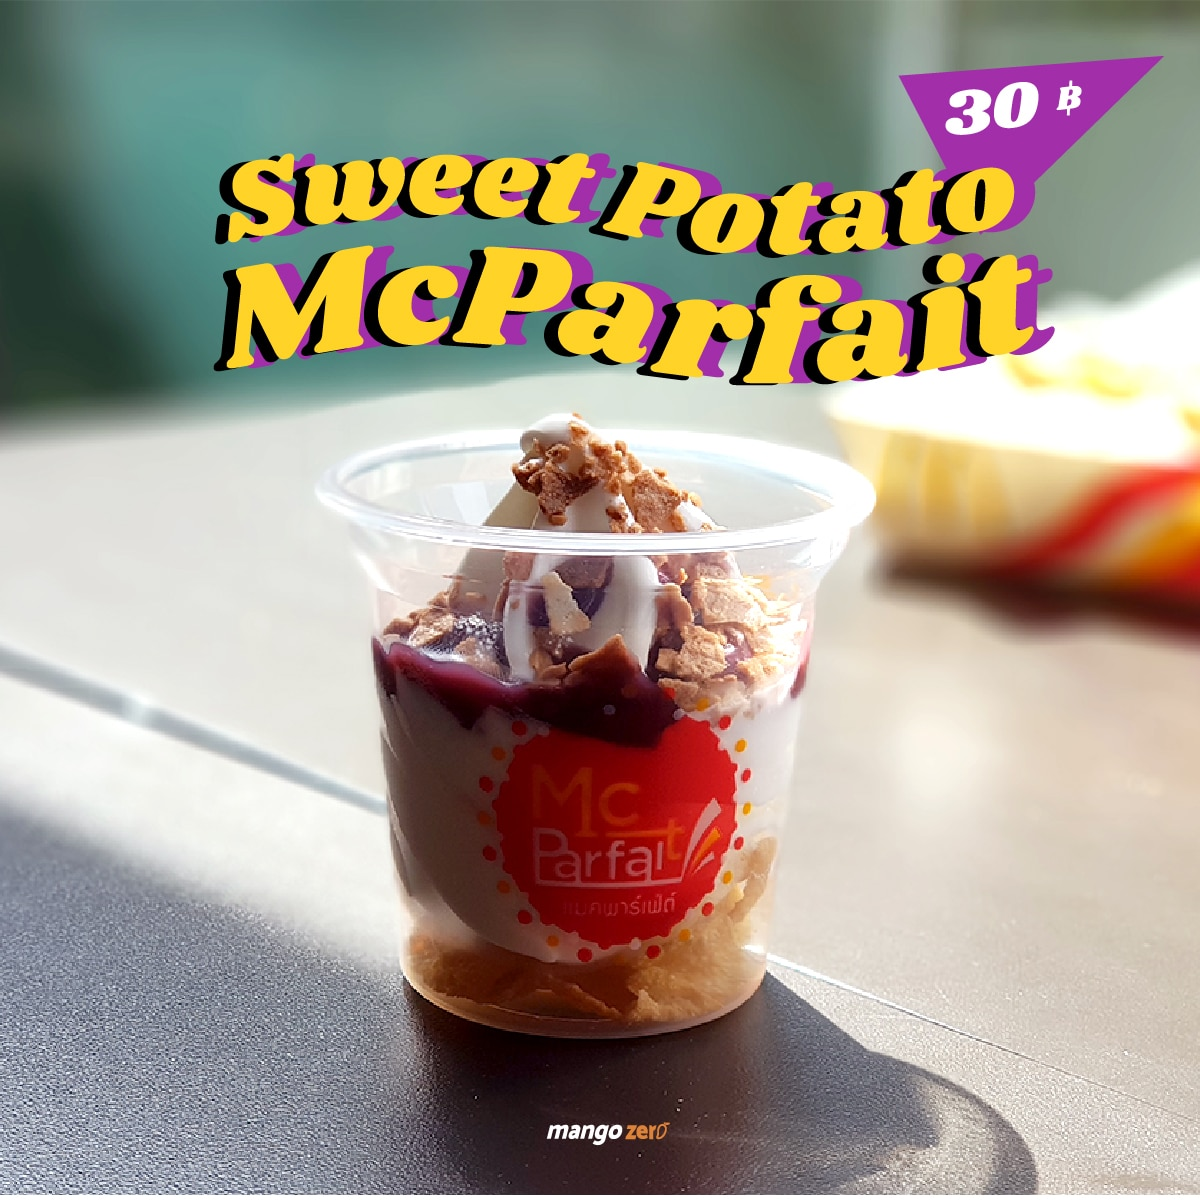 mcdonalds-cheesy-egg-bun-and-sweet-potato-desserts-09